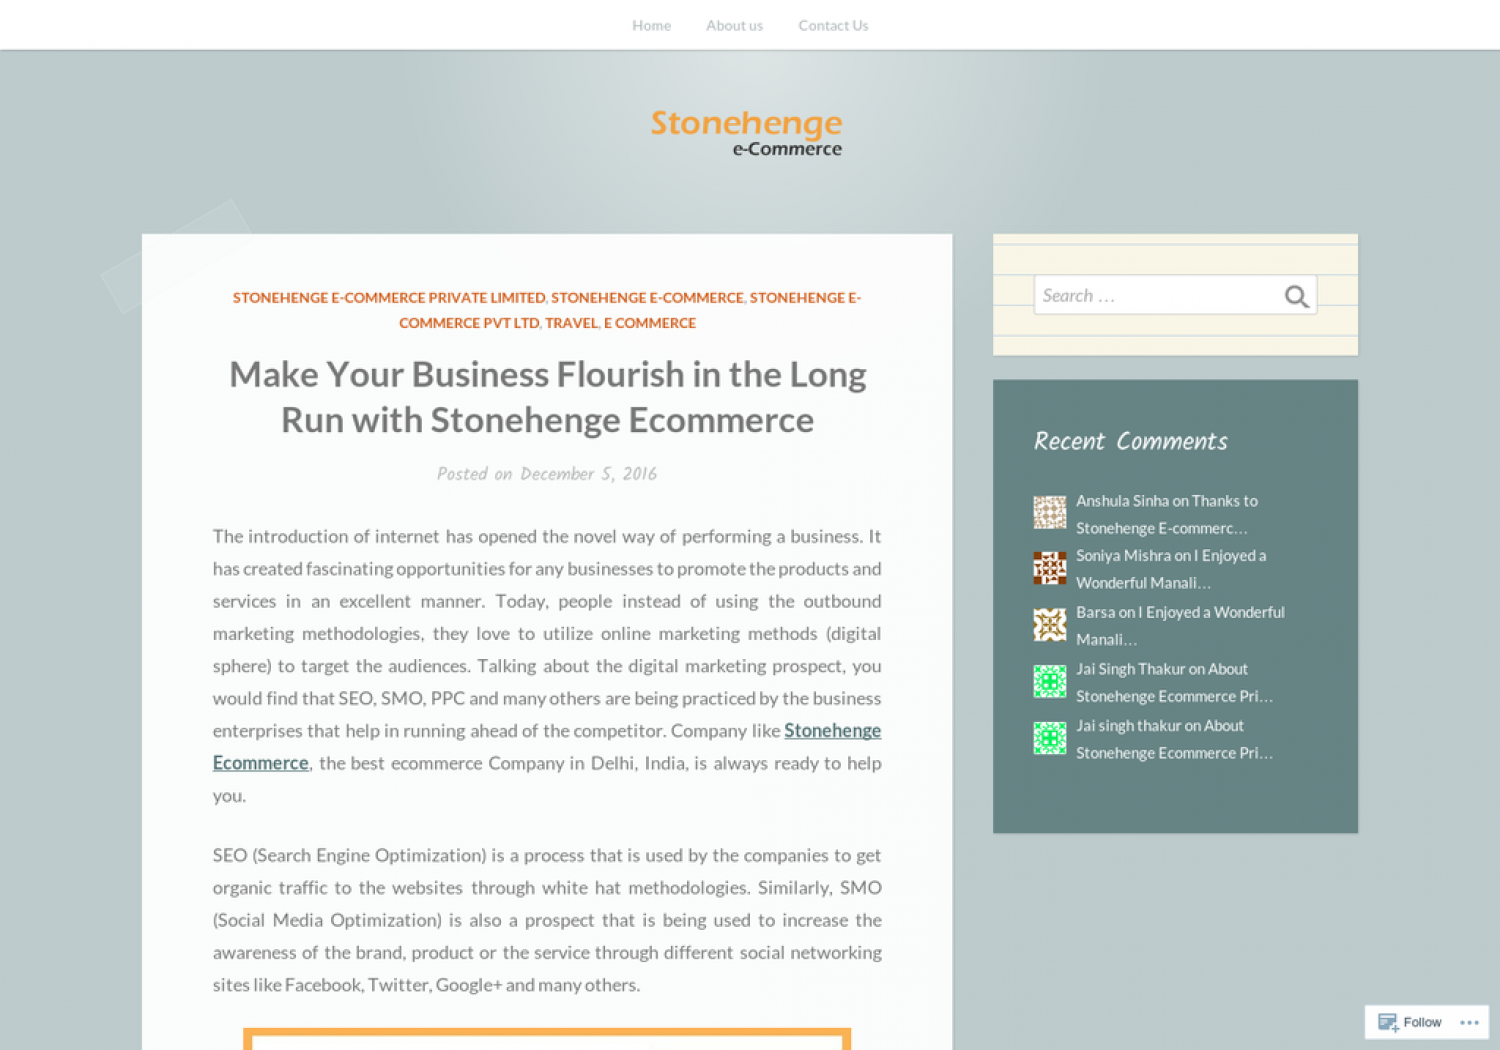 Make Your Business Flourish in the Long Run with Stonehenge Ecommerce Infographic